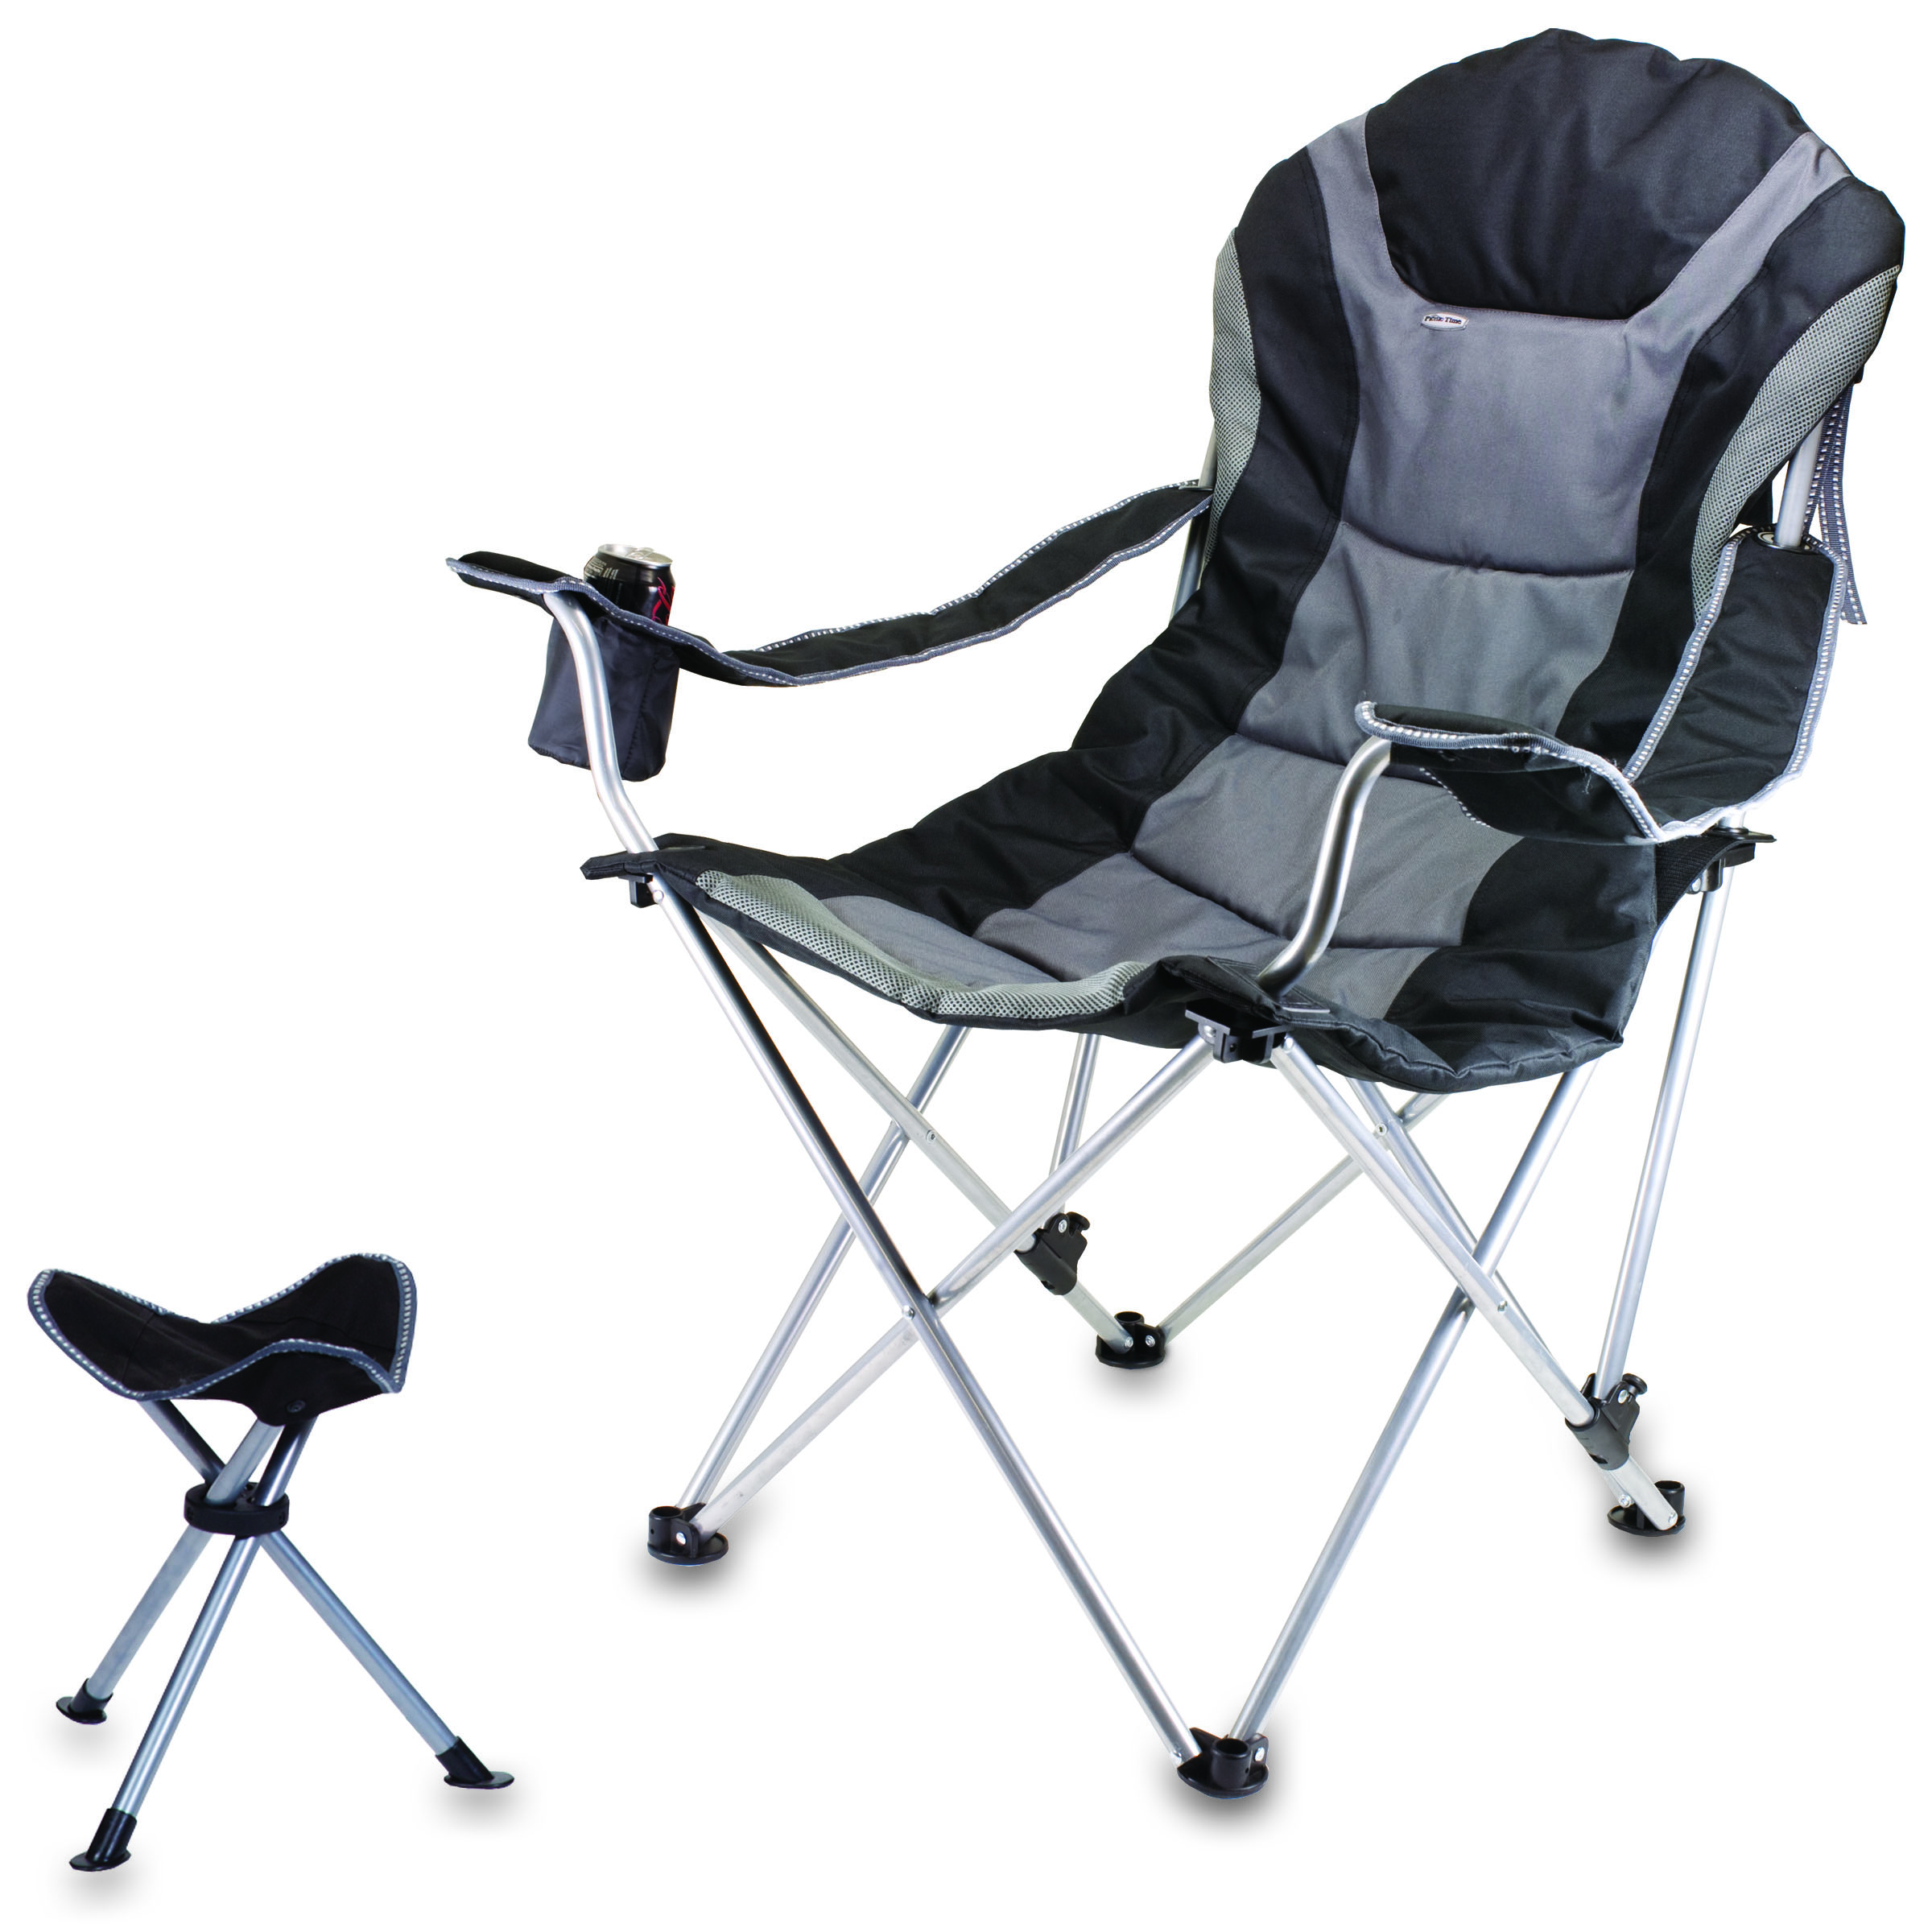 Camping Chair With Footrest Picnic Time Reclining Camp Chair With Footrest Black Grey